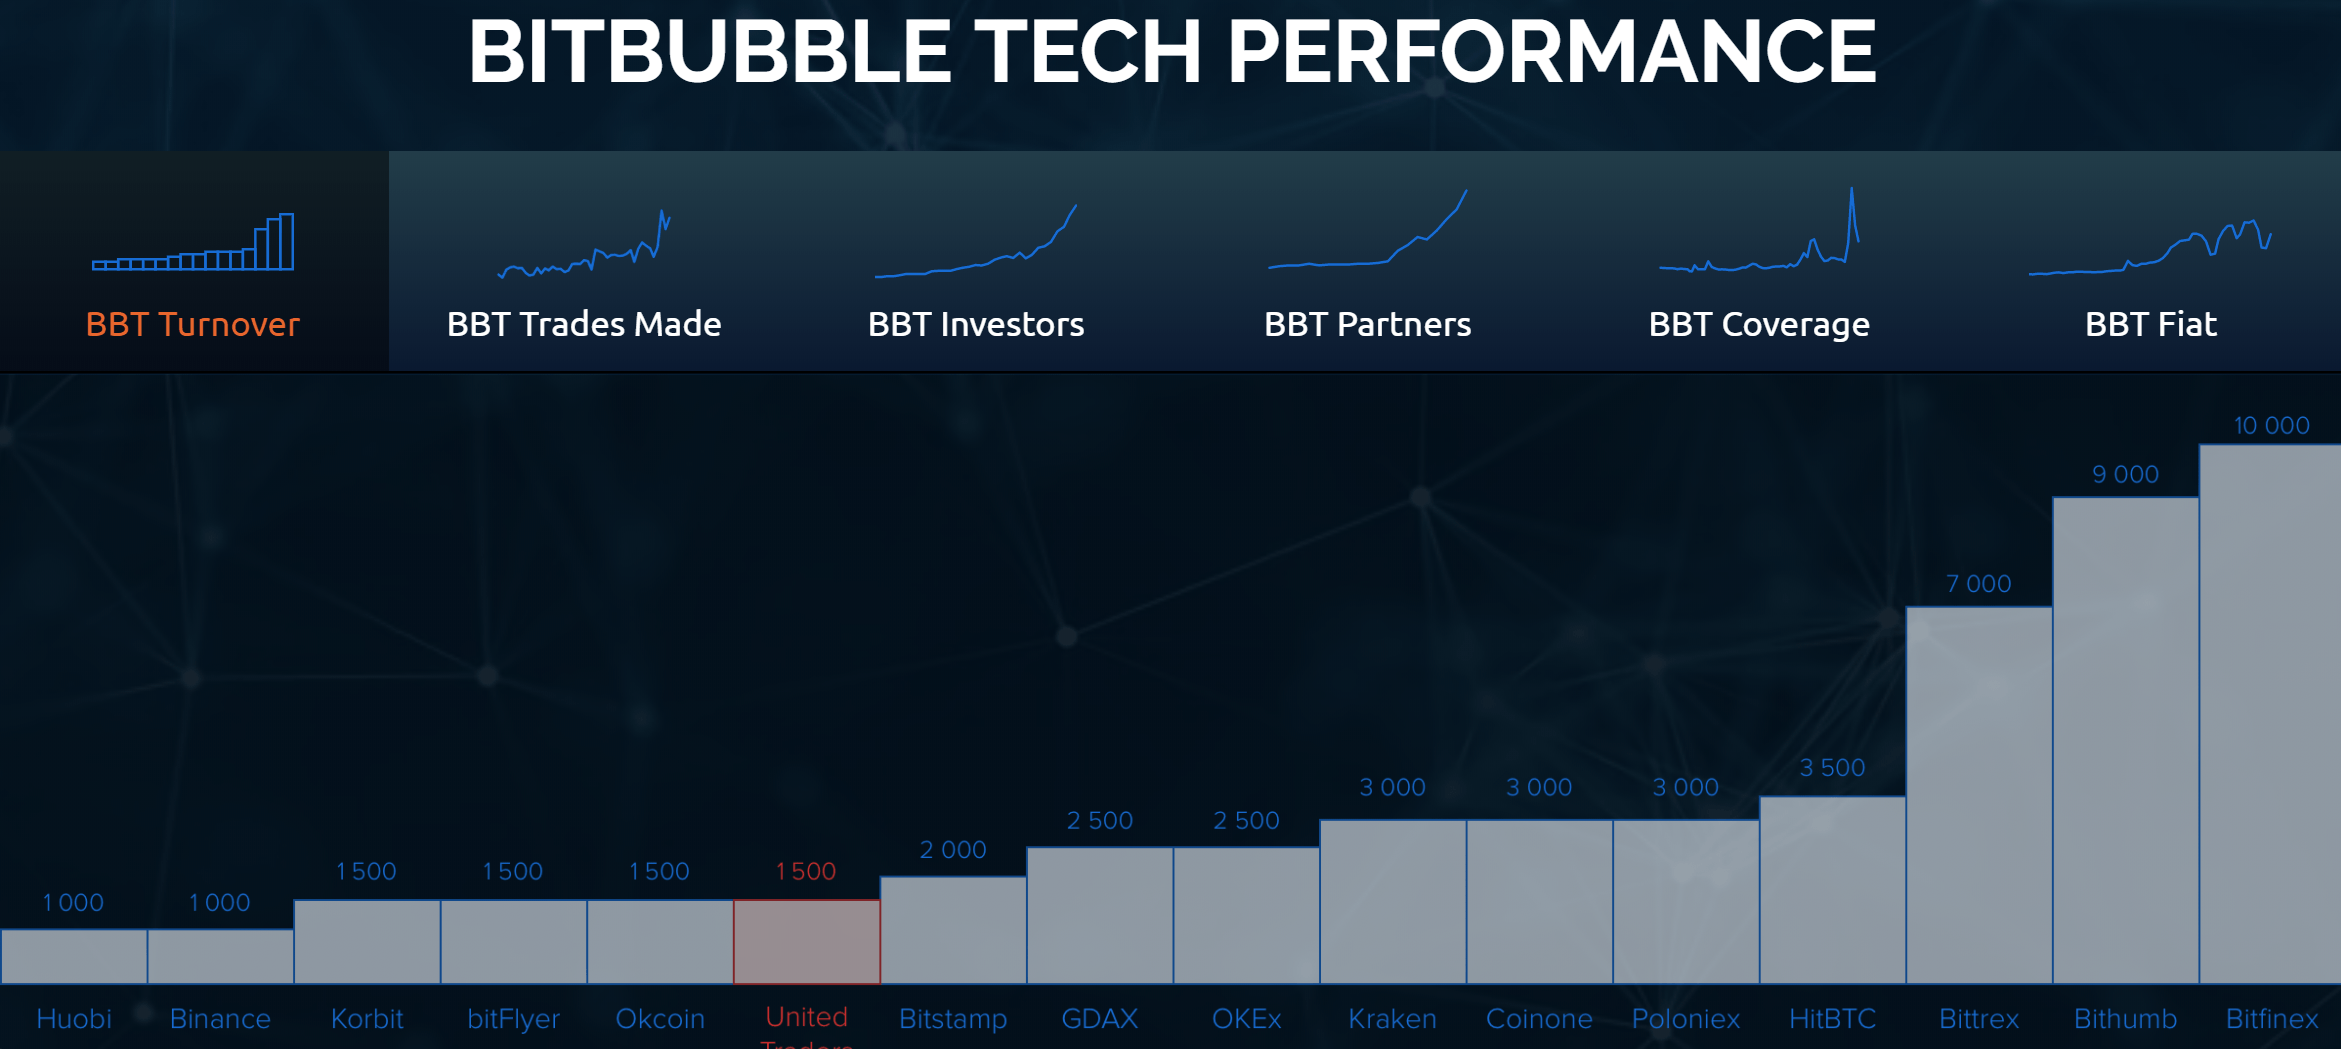 Bit Bubble Tech